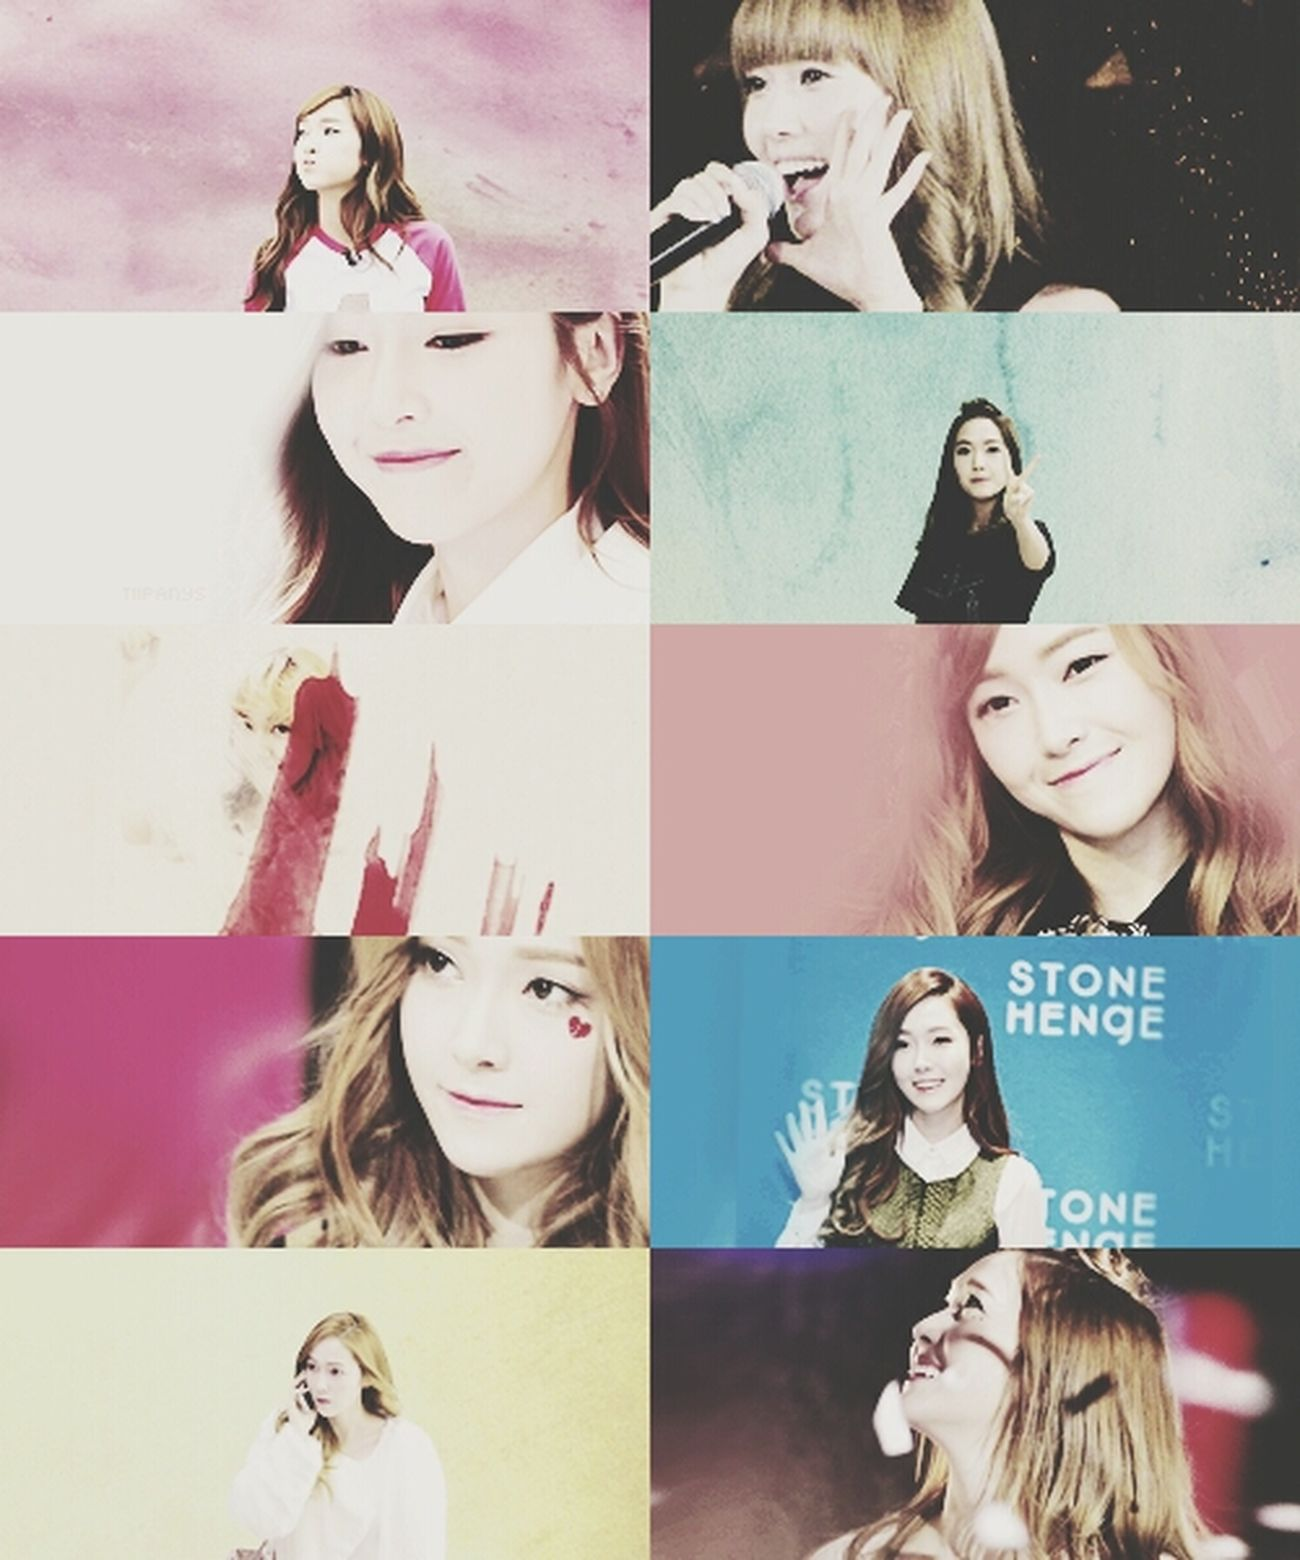 neomu yeppeo. ah. i love her so much? Jessica Jung